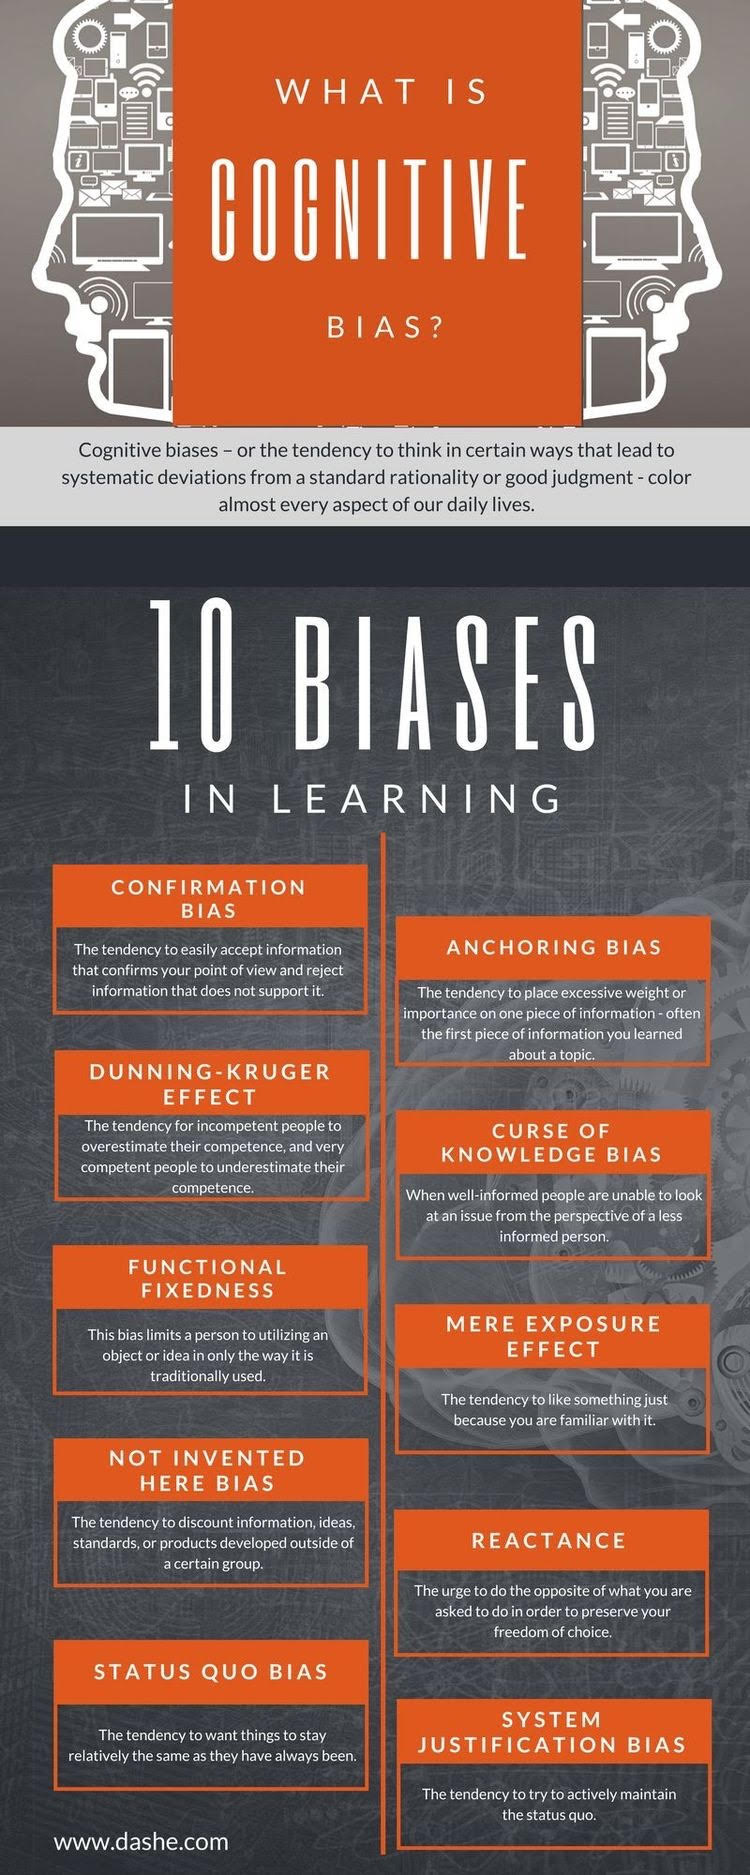 Cognitive biases - or the tendency to think in certain ways that lead to systematice deviations from a standard rationality of good judgment - color almost every aspect of our lives. Ten biases in learning are: confirmation bias, anchoring bias, Dunn-Kruger effect, Curse of Knowledge Bias, Functional fixedness, Mere Exposure effect, Not invented here bias, reatance, status quo bias, and system justeification bias. Source: www.dashe.com